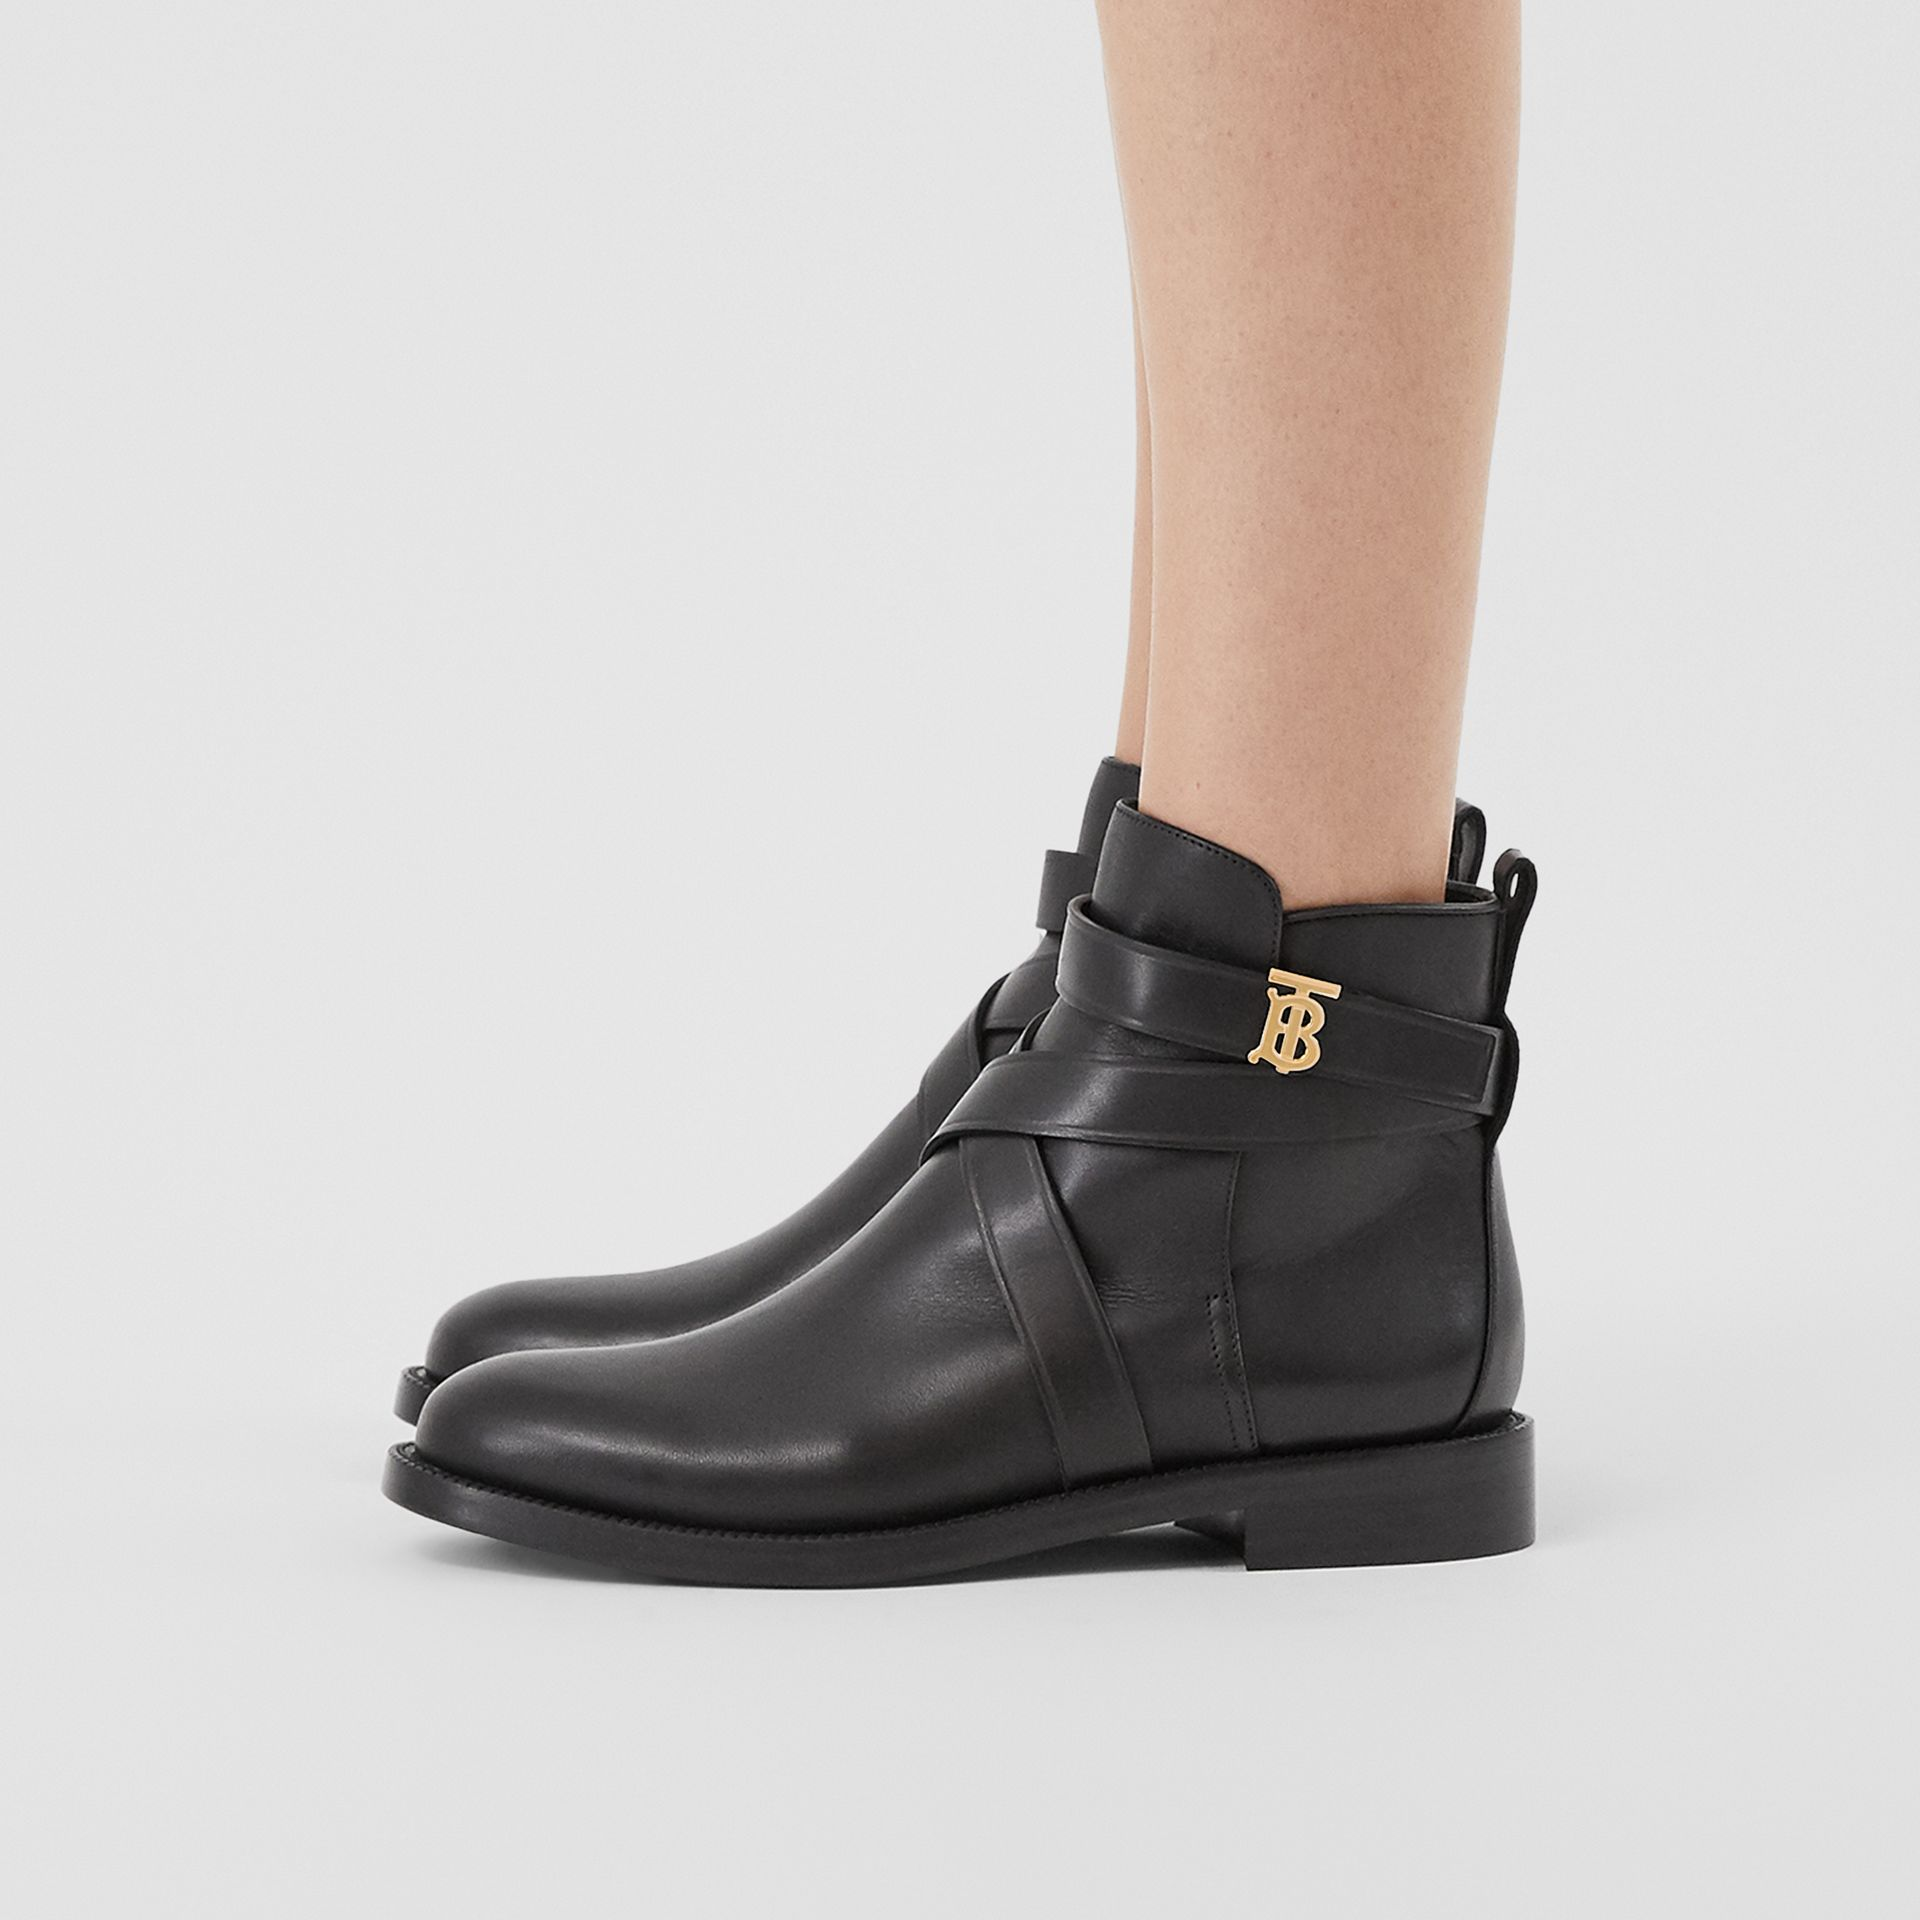 Monogram Motif Leather Ankle Boots in Black - Women | Burberry - gallery image 2